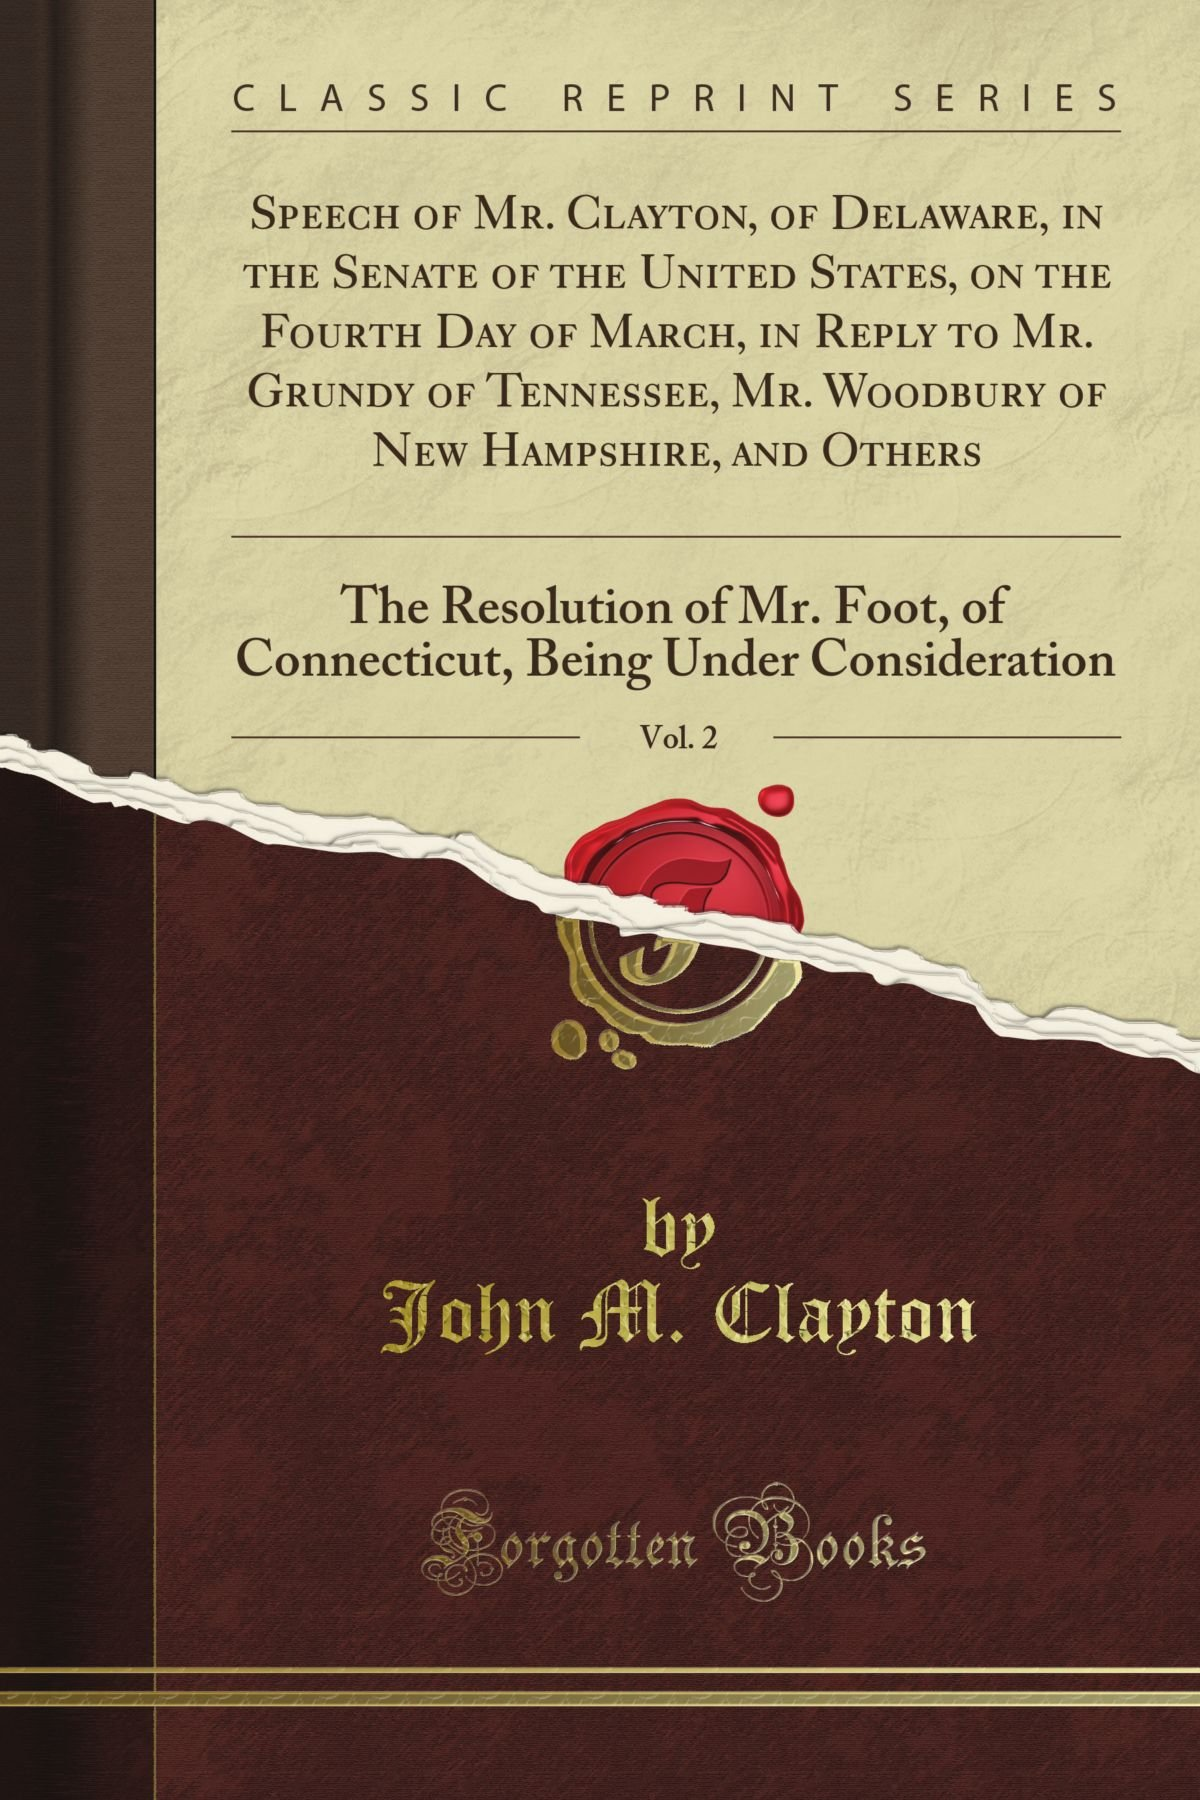 Speech of Mr. Clayton, of Delaware, in the Senate of the United States, on the Fourth Day of March, in Reply to Mr. Grundy of Tennessee, Mr. Woodbury ... and Others, Vol. 2 (Classic Reprint) PDF